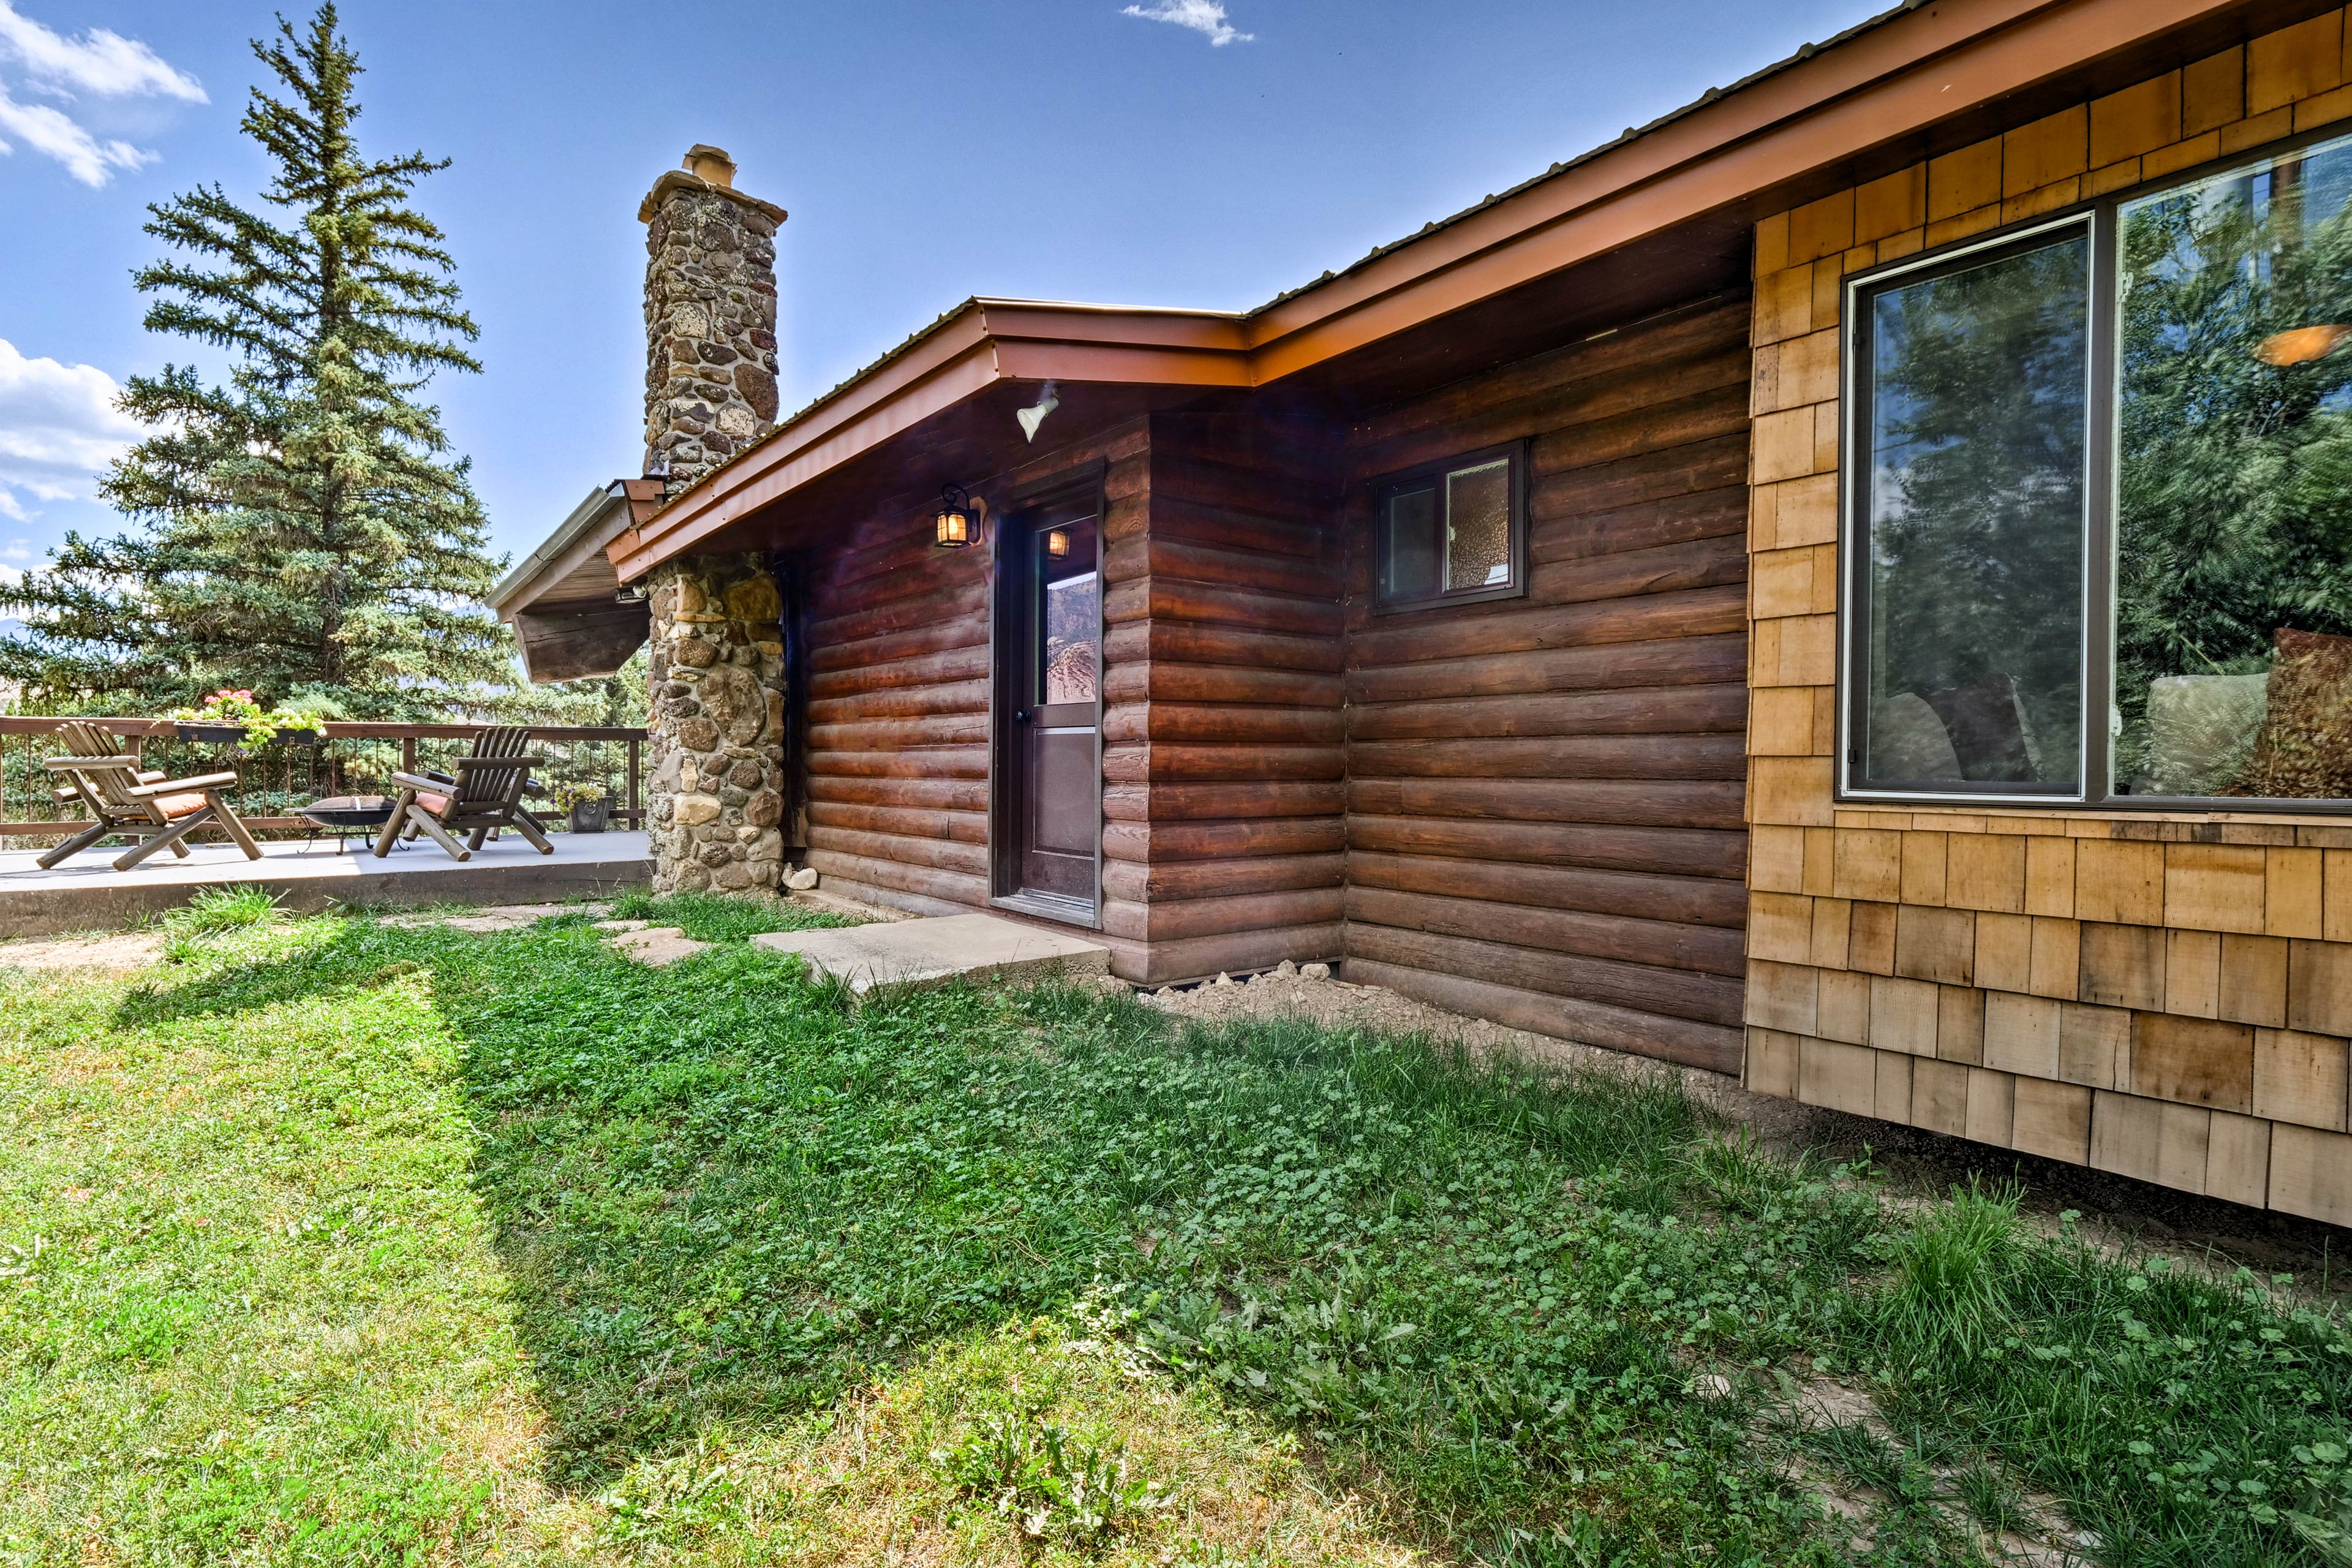 The chimney boasts a gorgeous flagstone exterior.